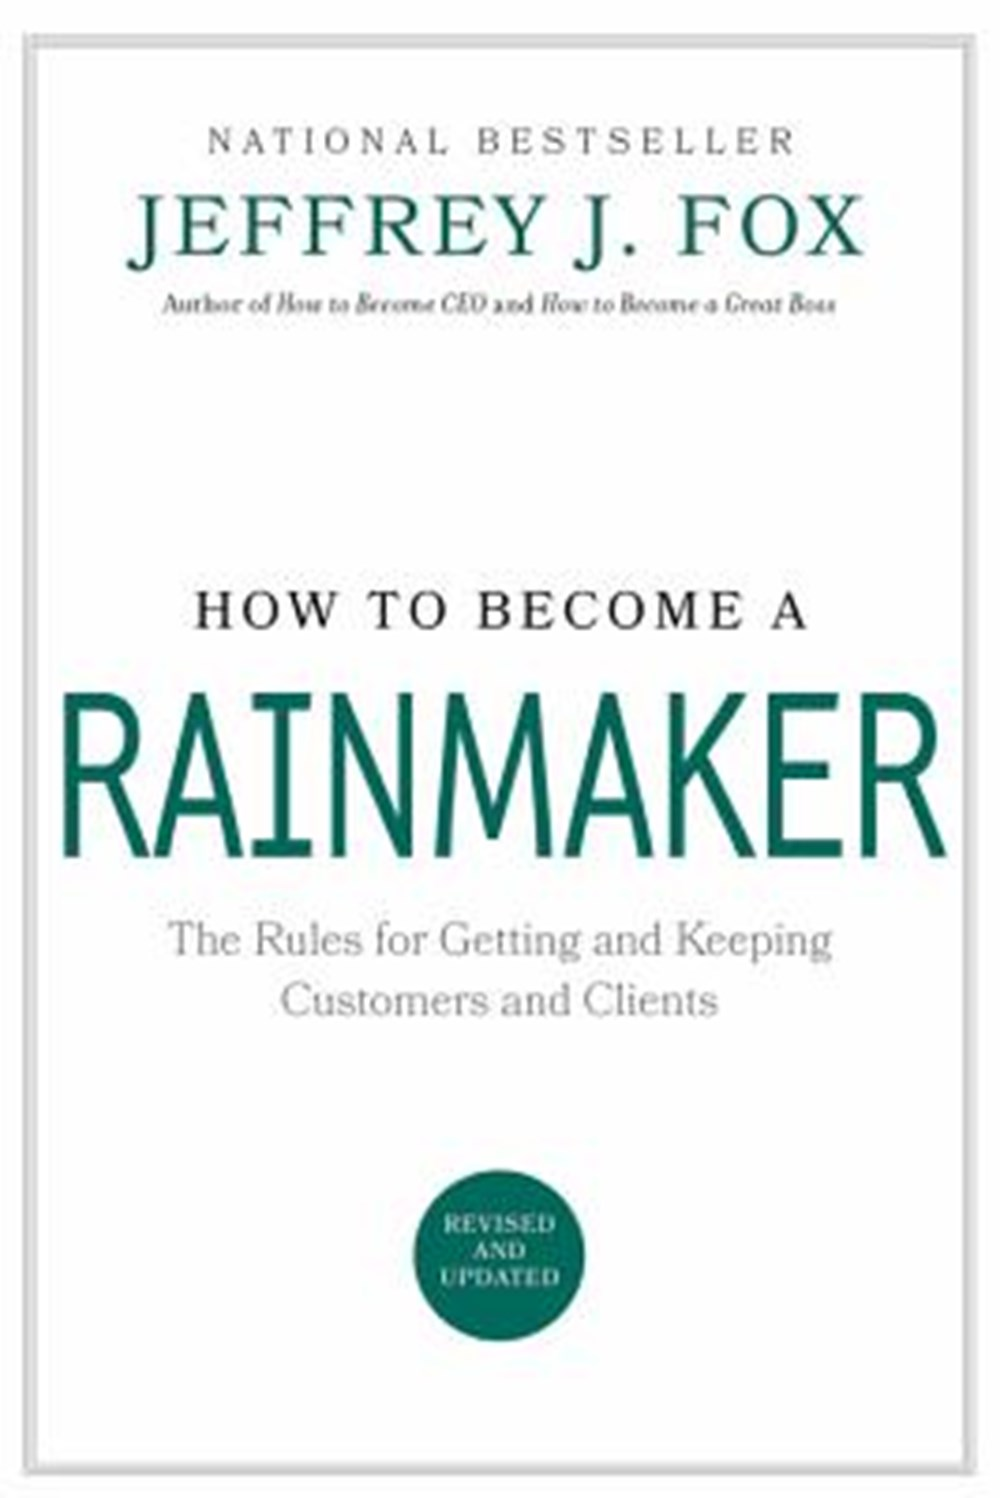 How to Become a Rainmaker The Rules for Getting and Keeping Customers and Clients